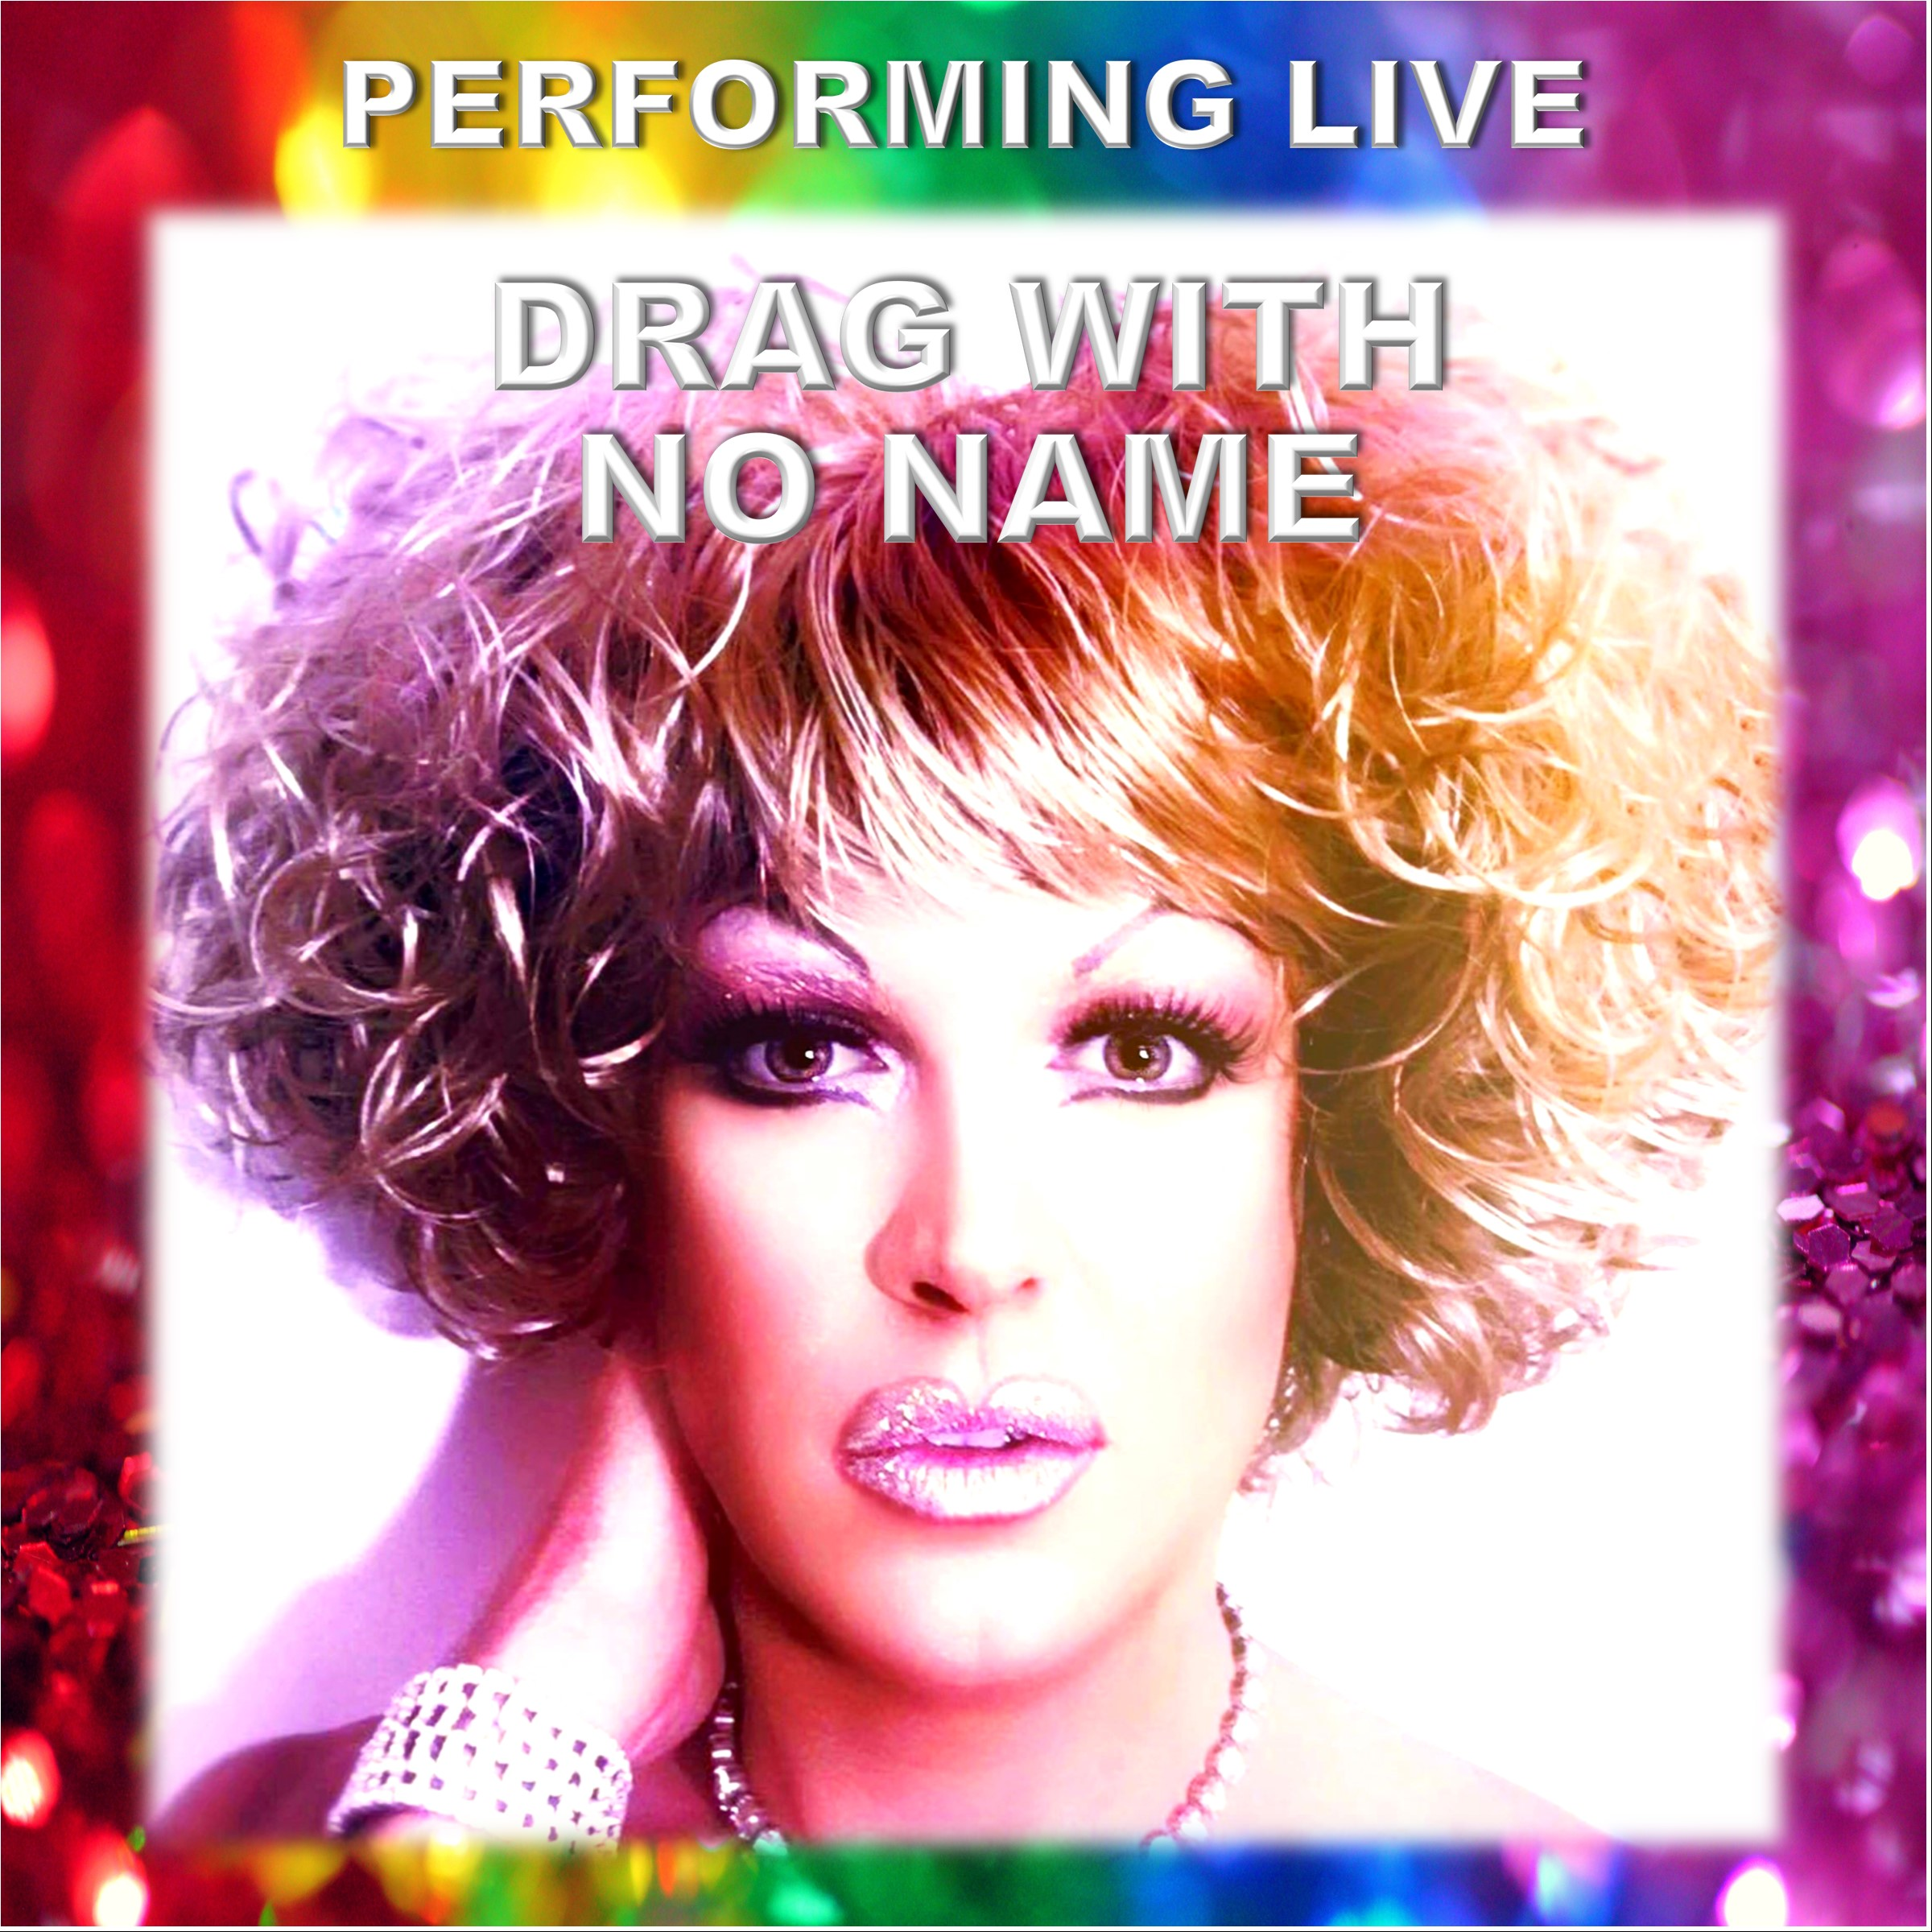 Performing Live - Drag with No Name